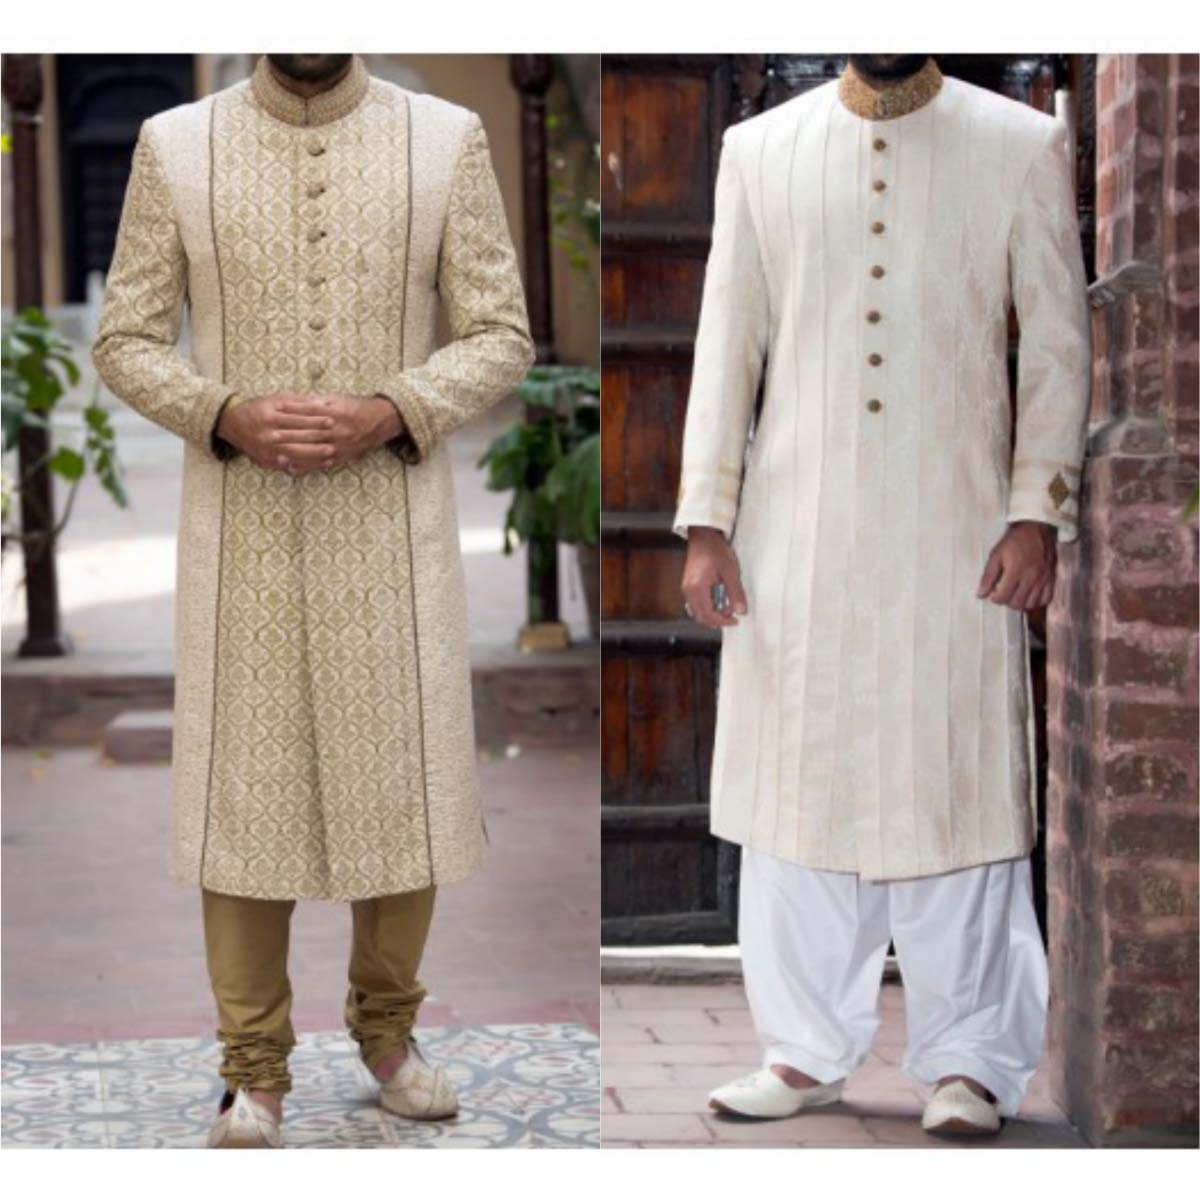 j-j-junaid-jamshed-shwerwanis-design-for-groom-2016-2